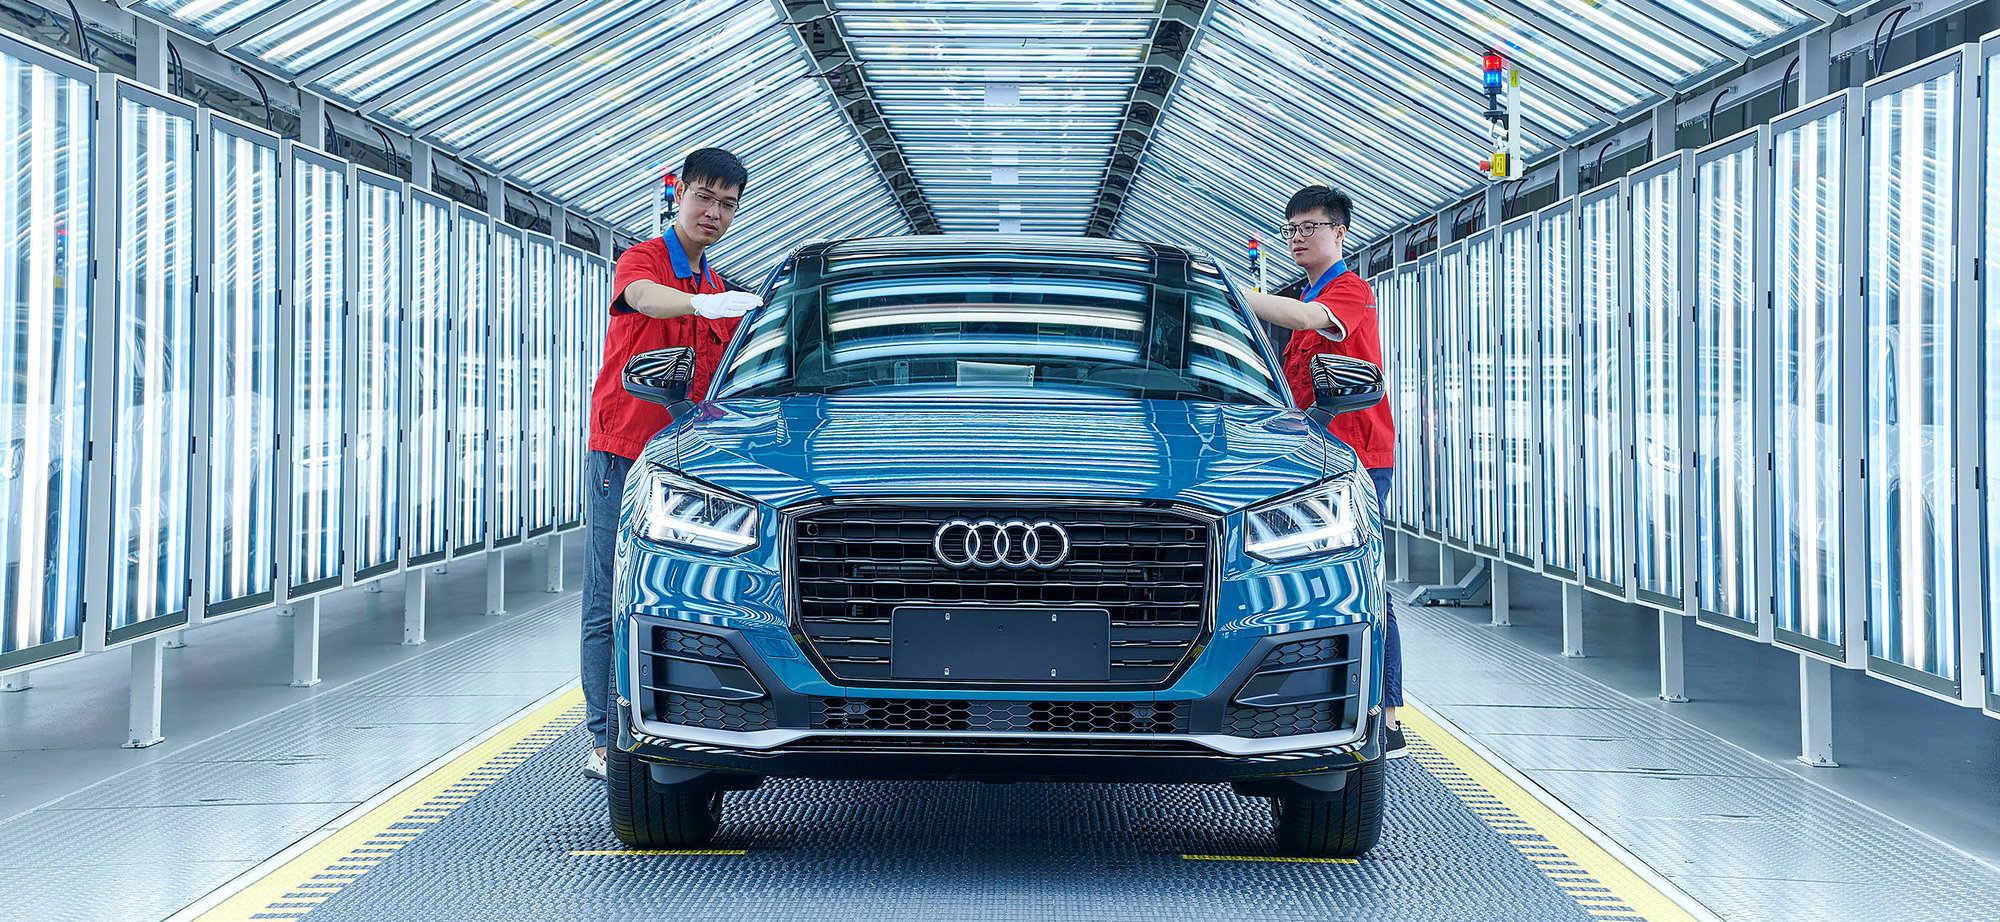 CHINESE CAR PRODUCTION 3